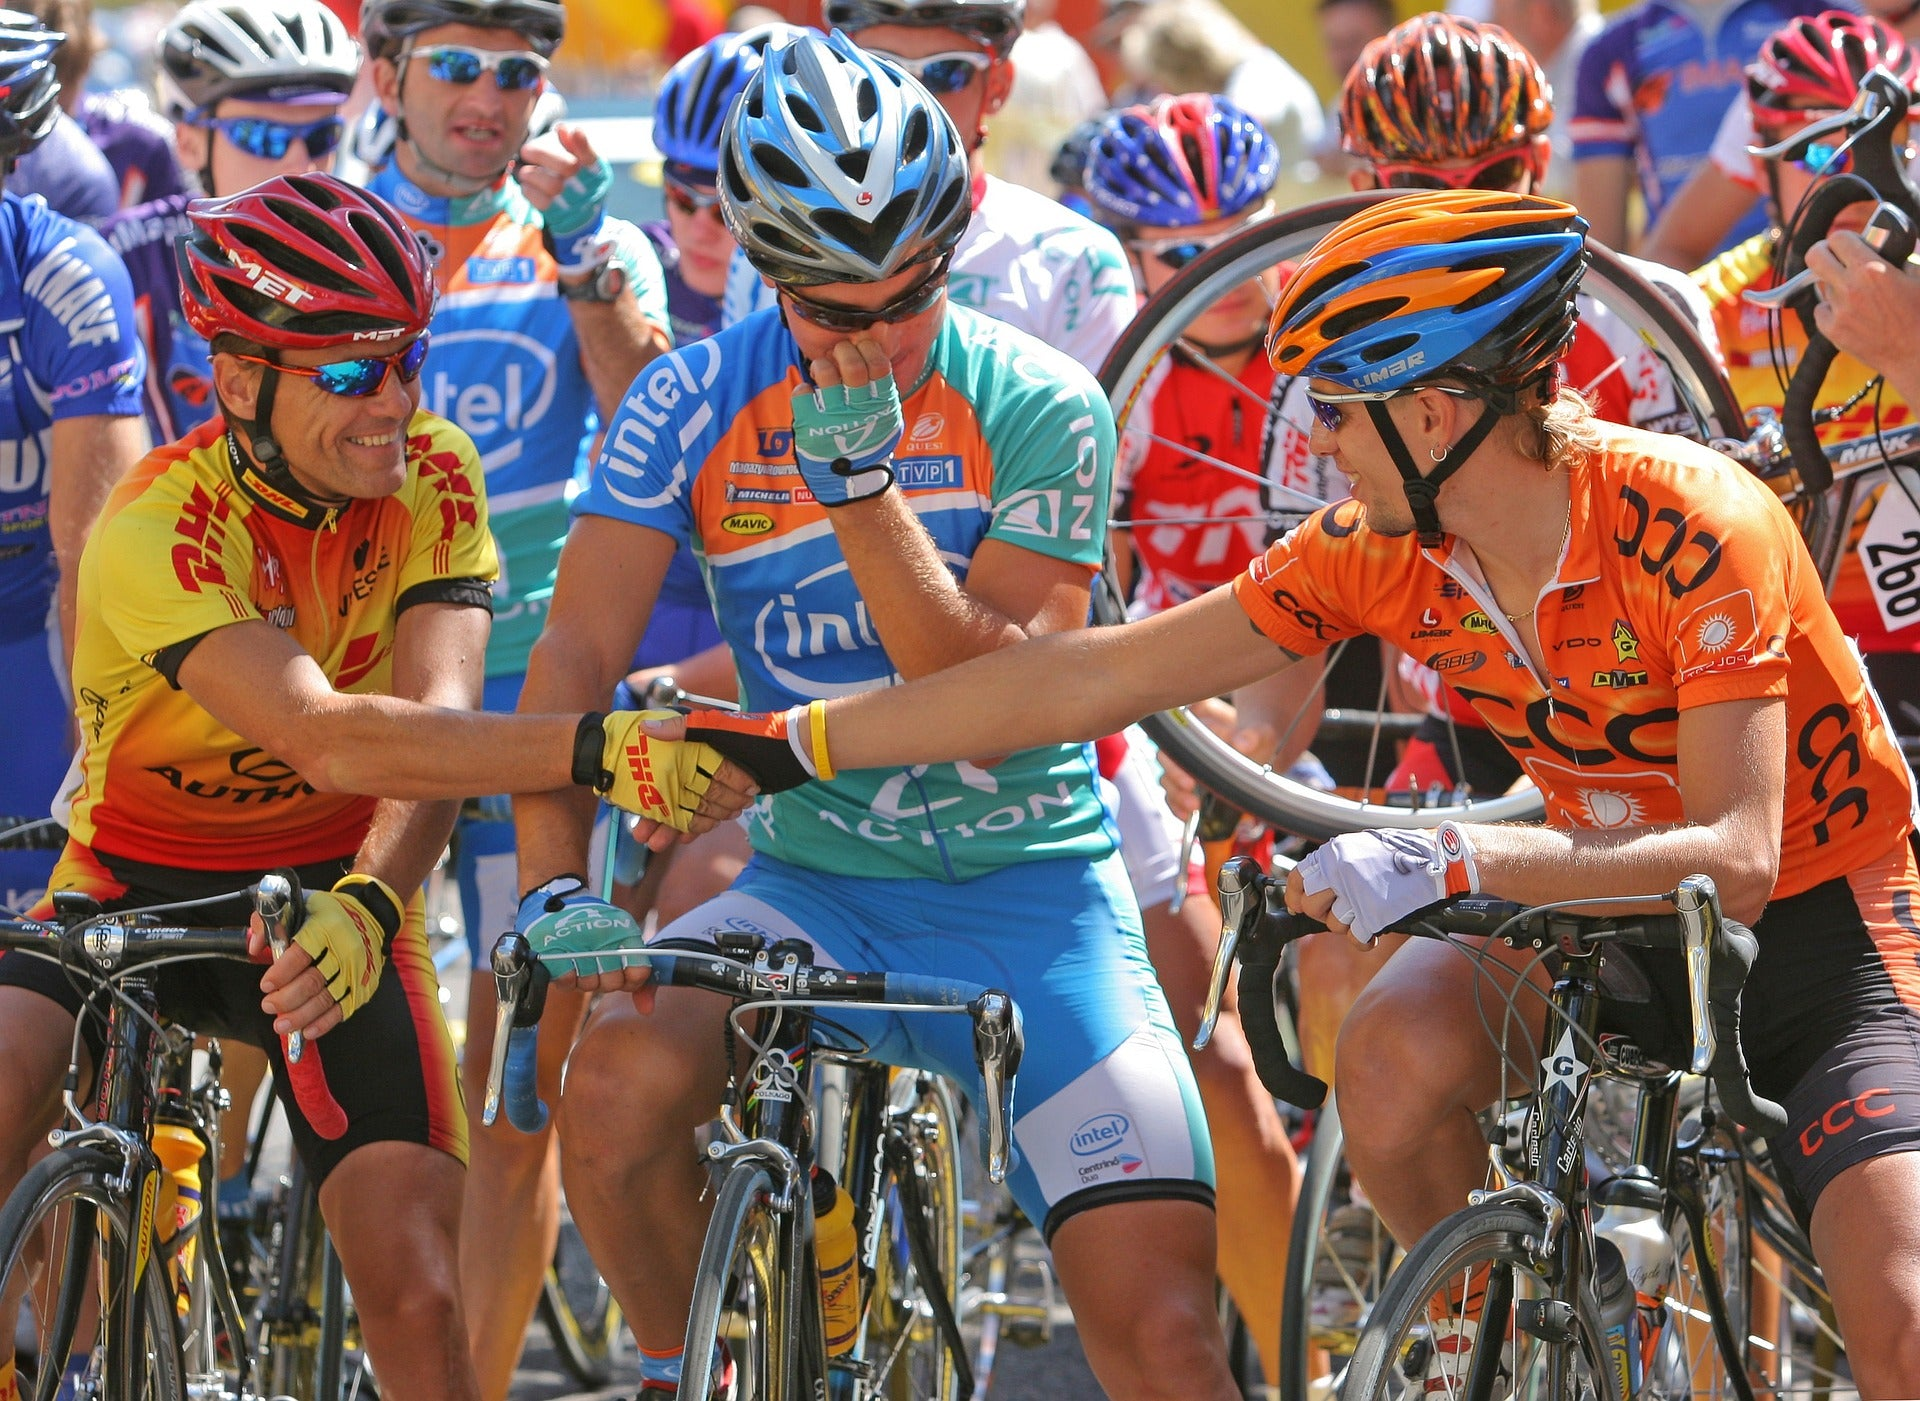 carb-rinsing cycling improve